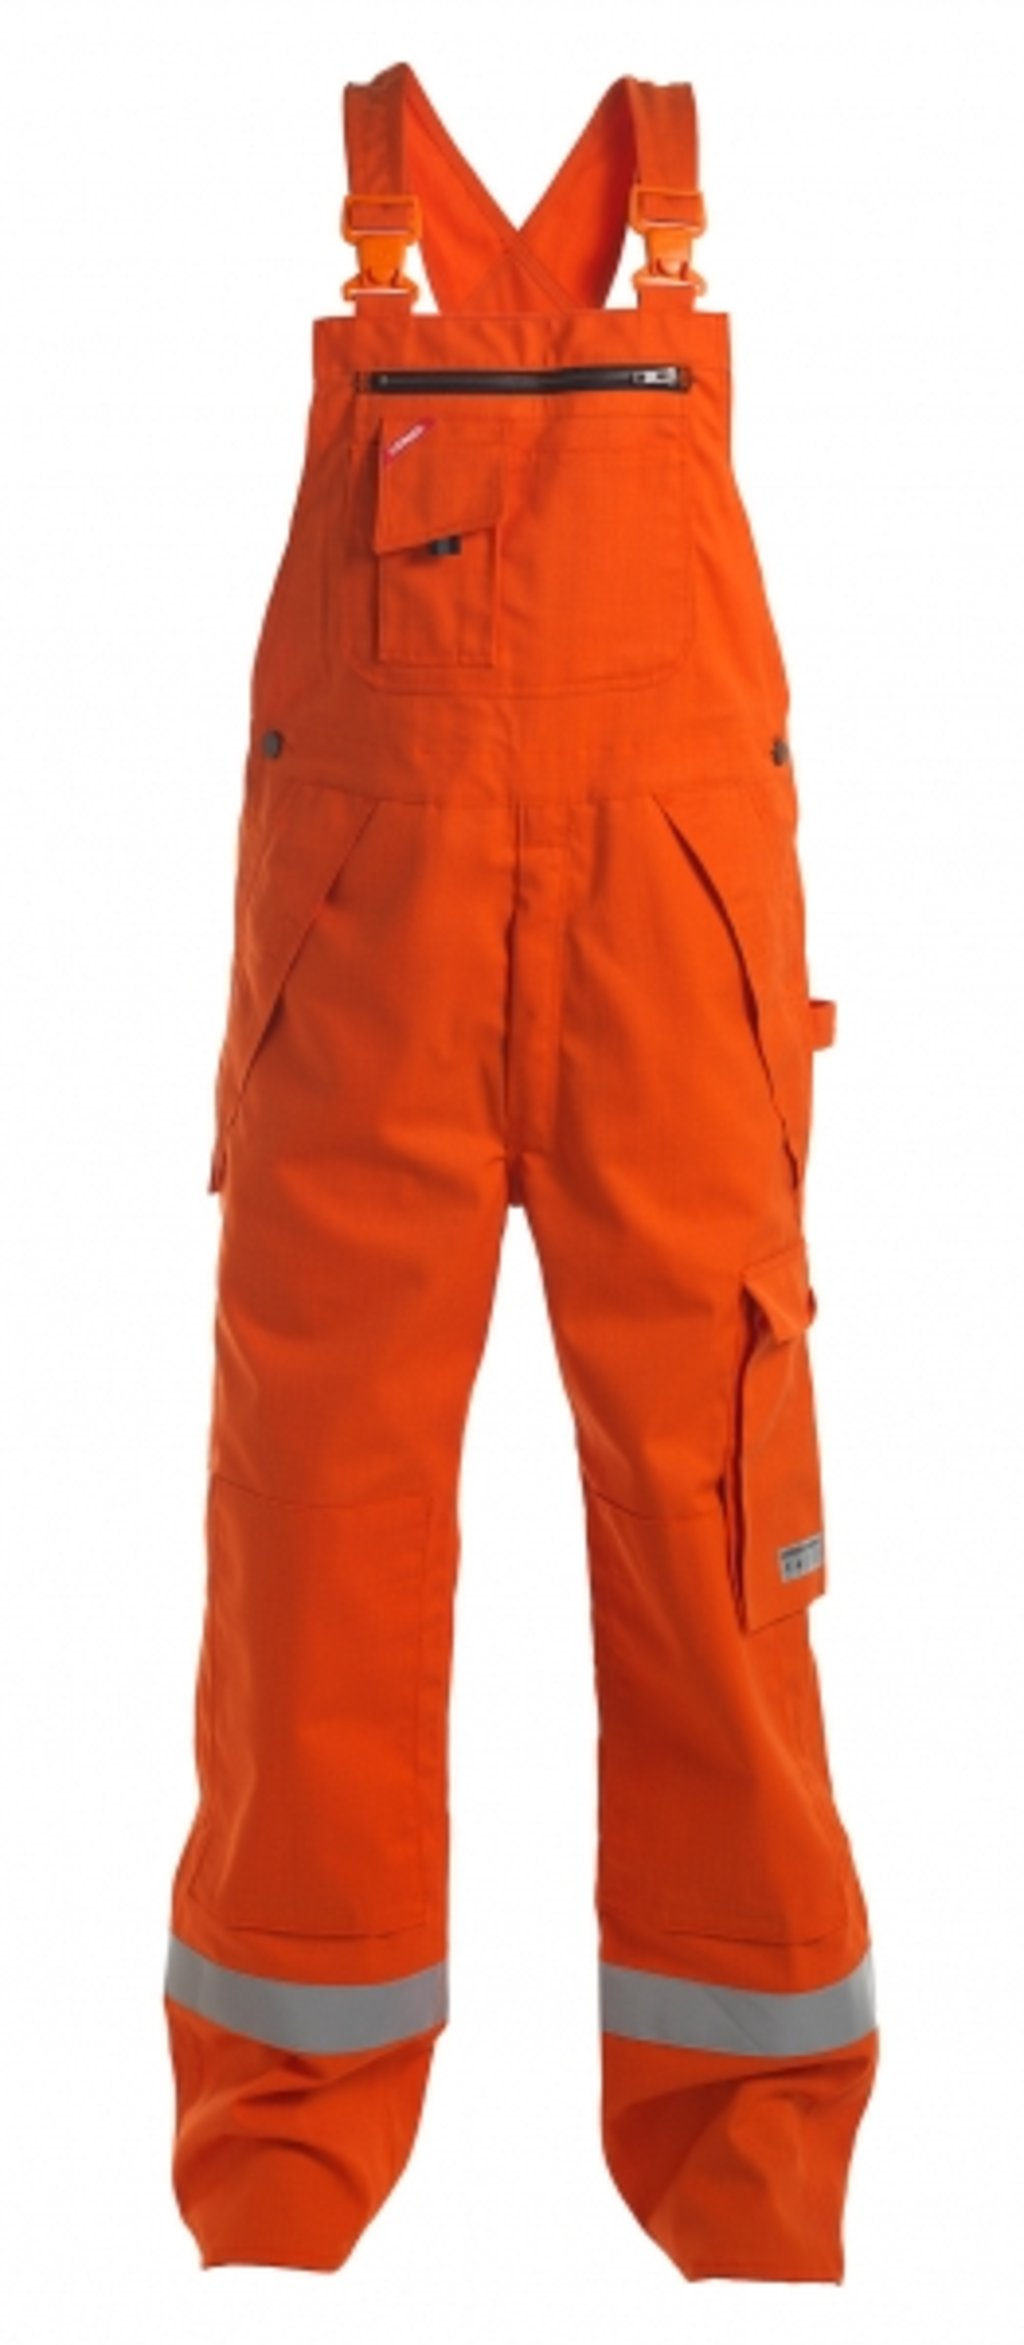 FE Engel Safety+ overalls, Orange